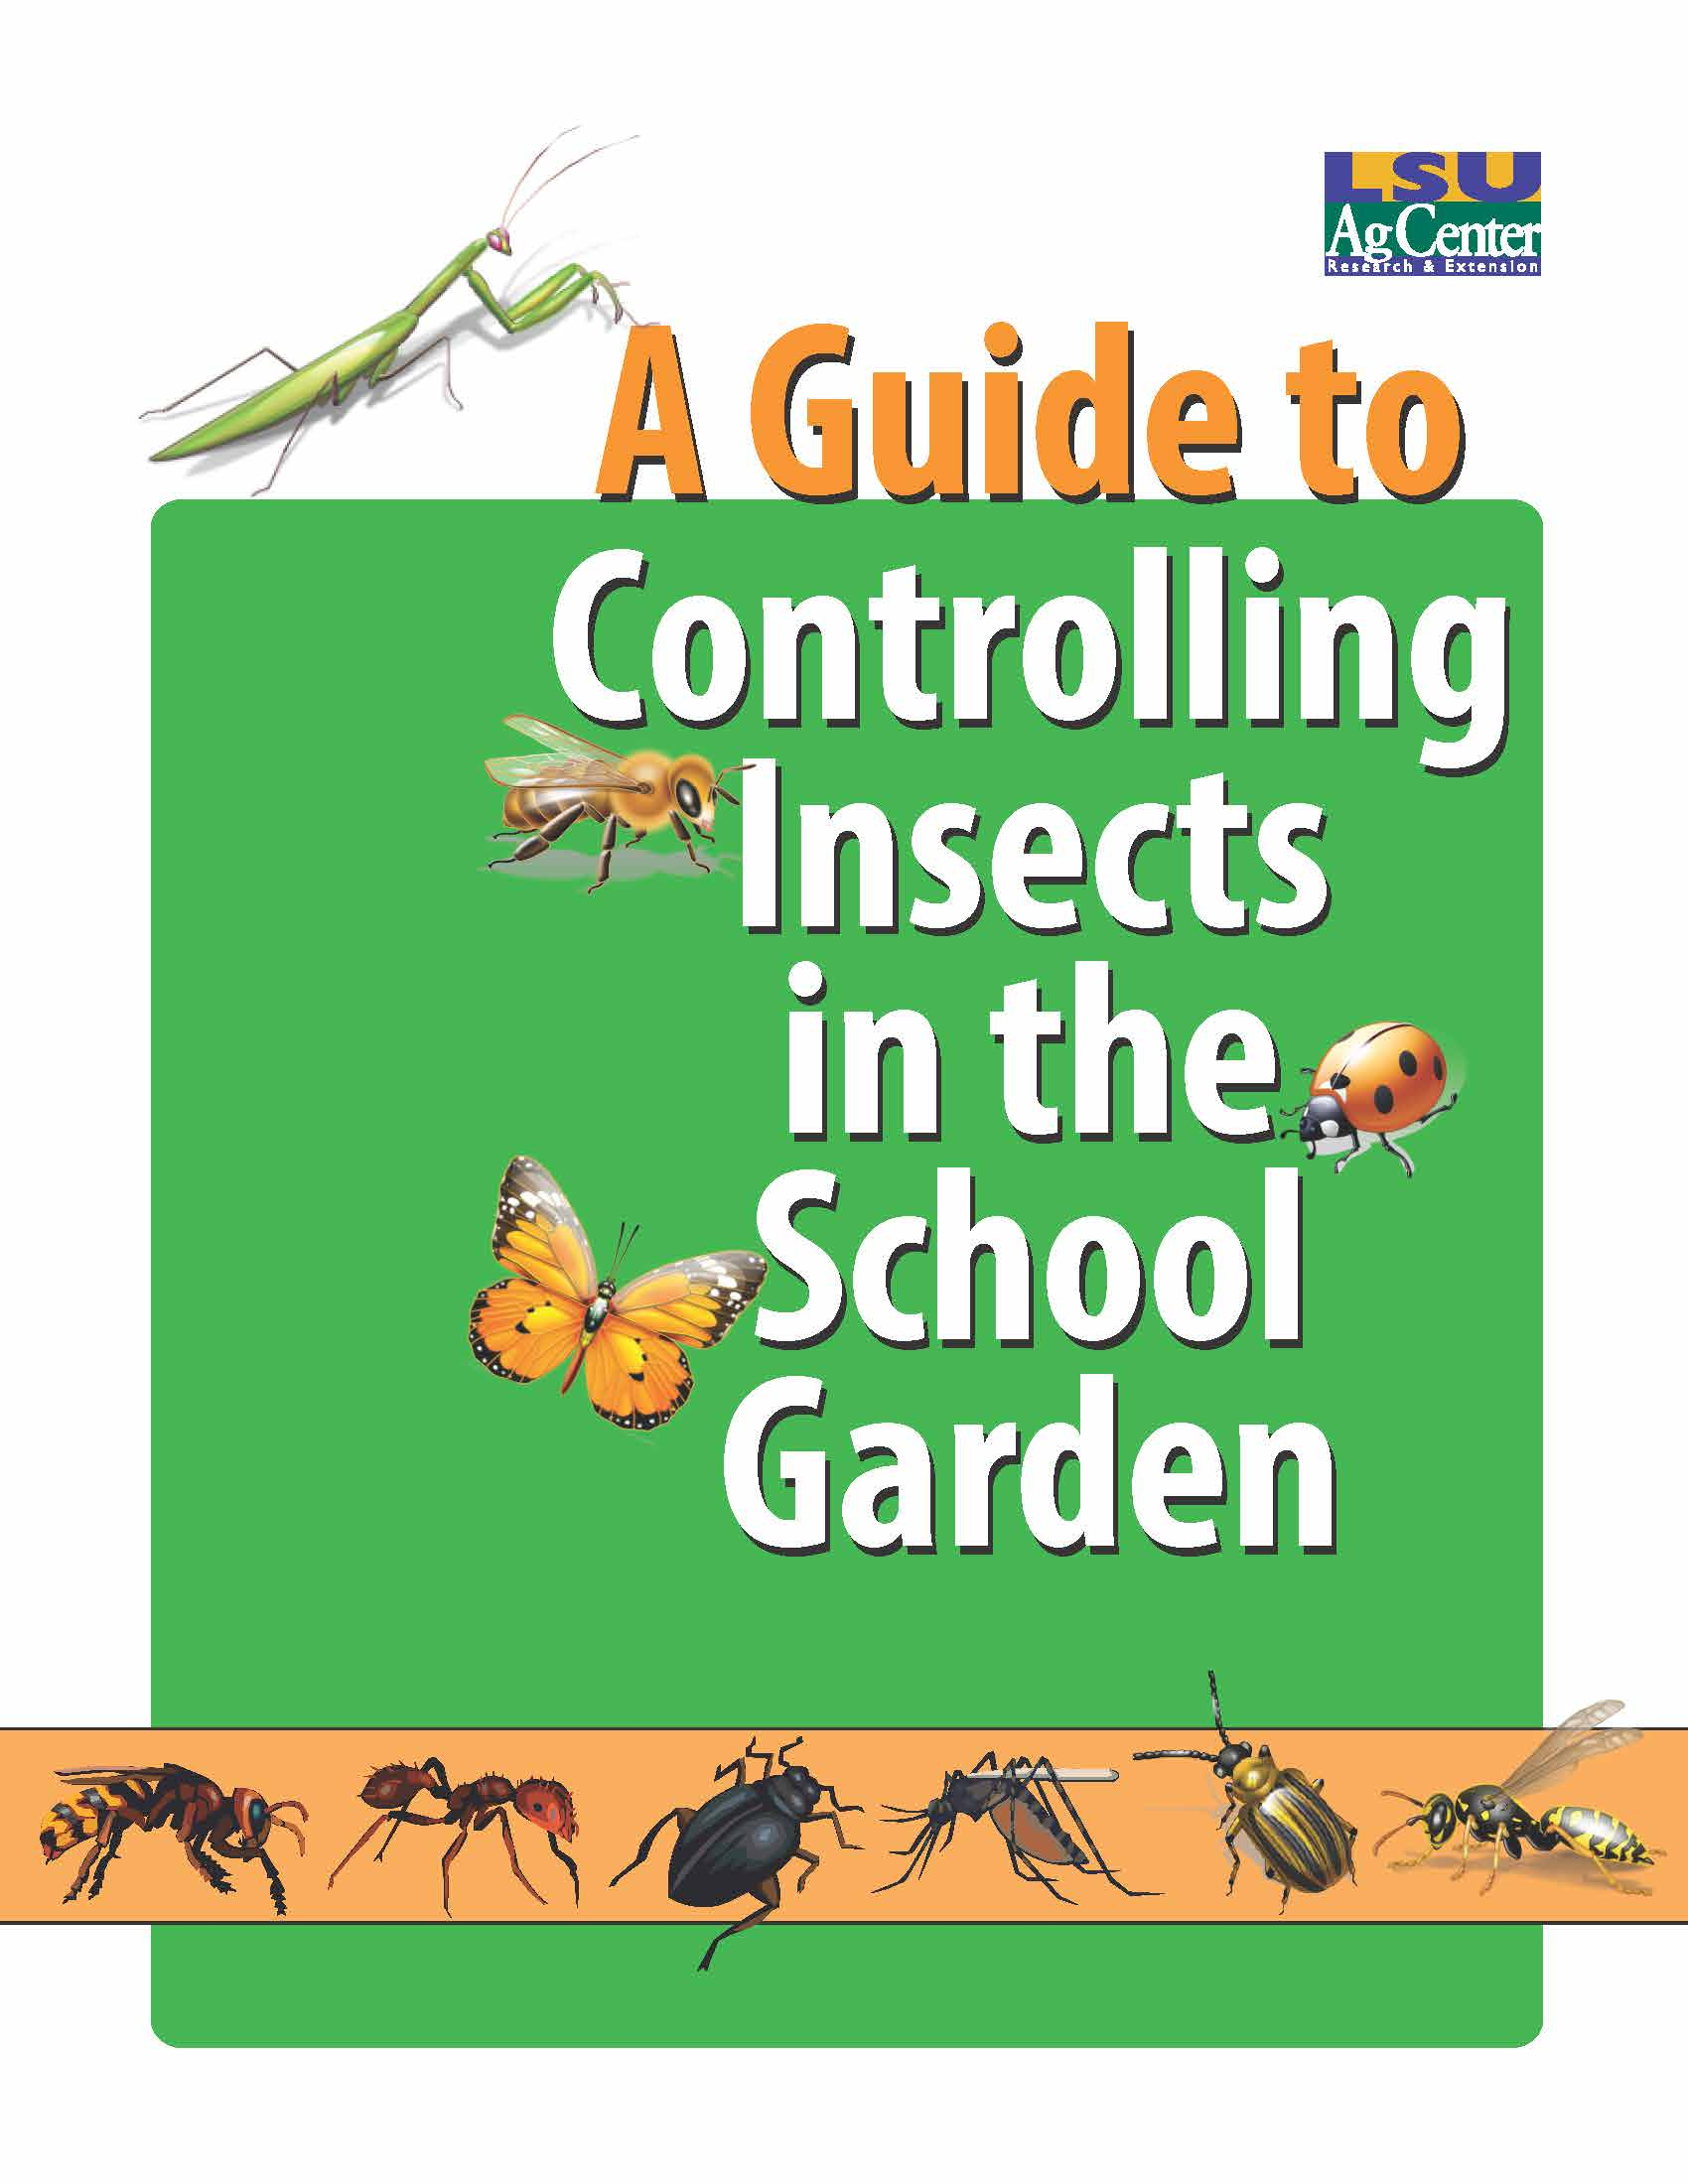 A Guide to Controlling Insects in the School Garden